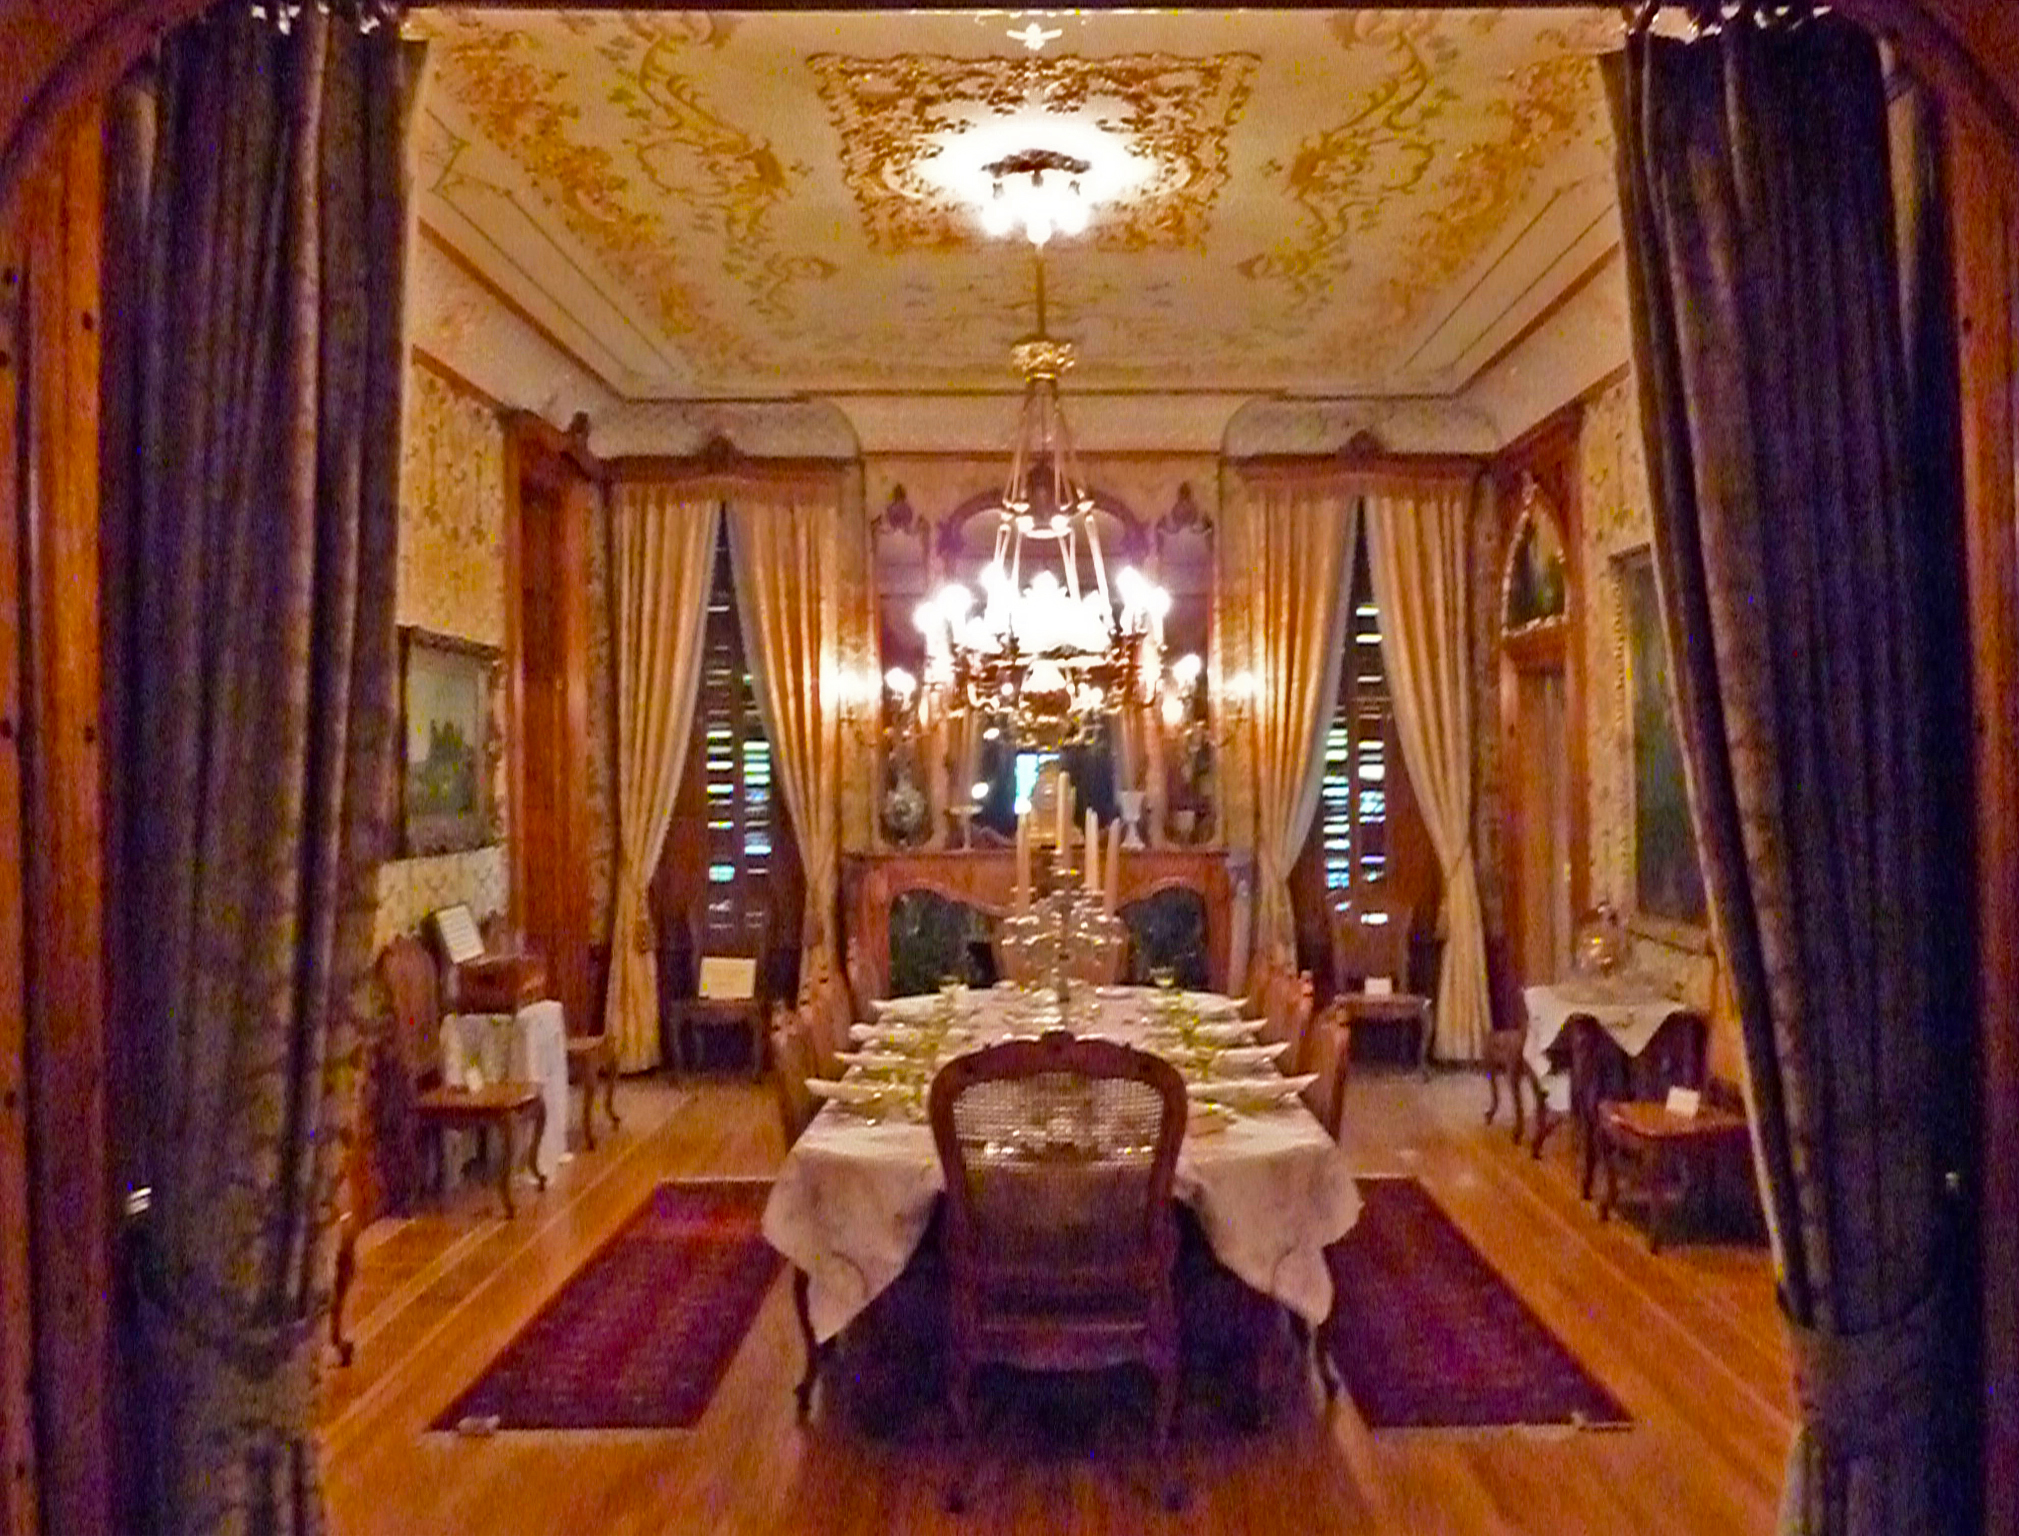 Top Mansion Dining Room 2019 x 1536 · 2350 kB · jpeg